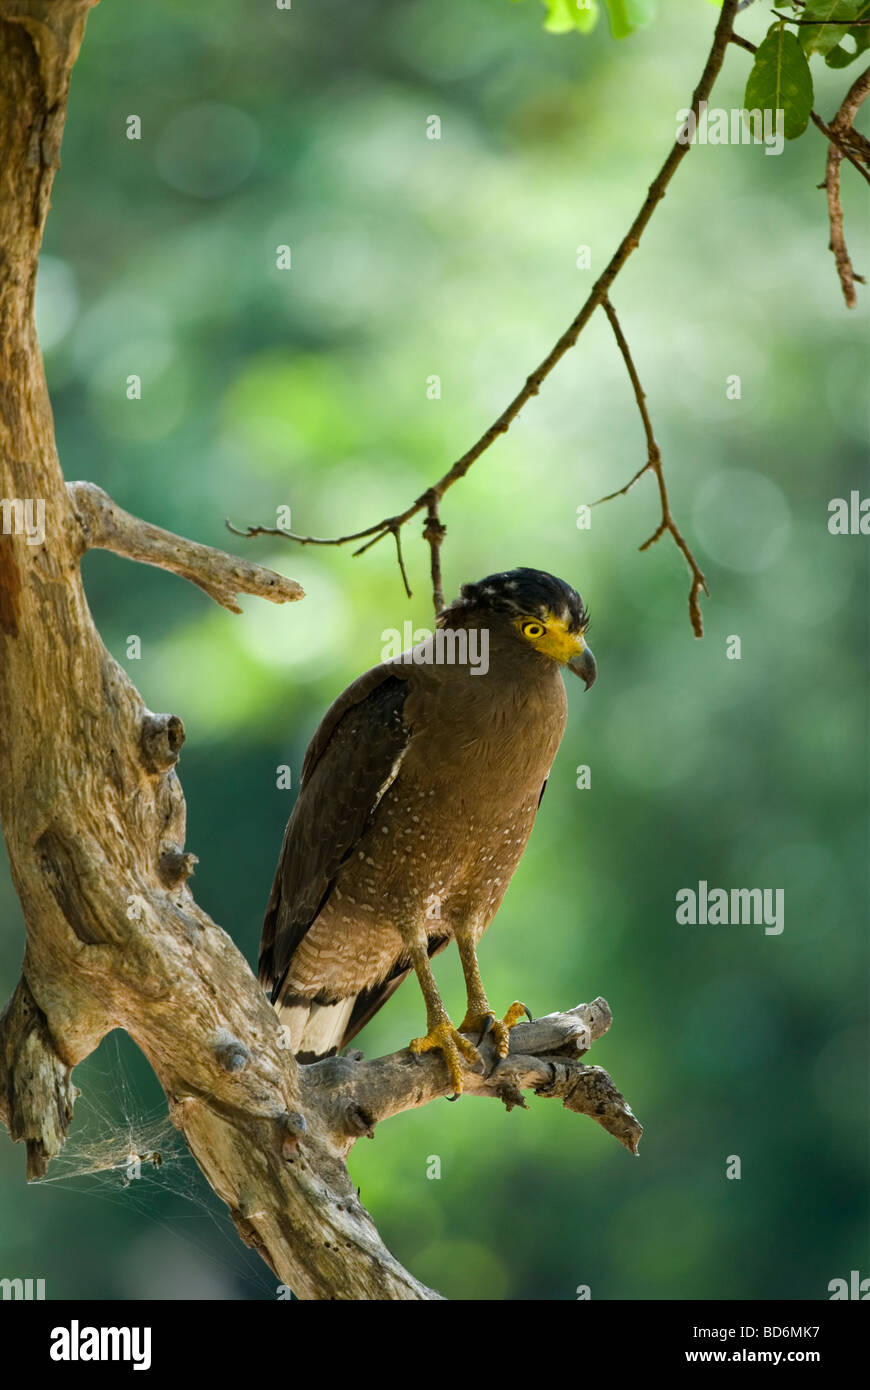 Crested Serpent Eagle, Yala National Park, Sri Lanka - Stock Image